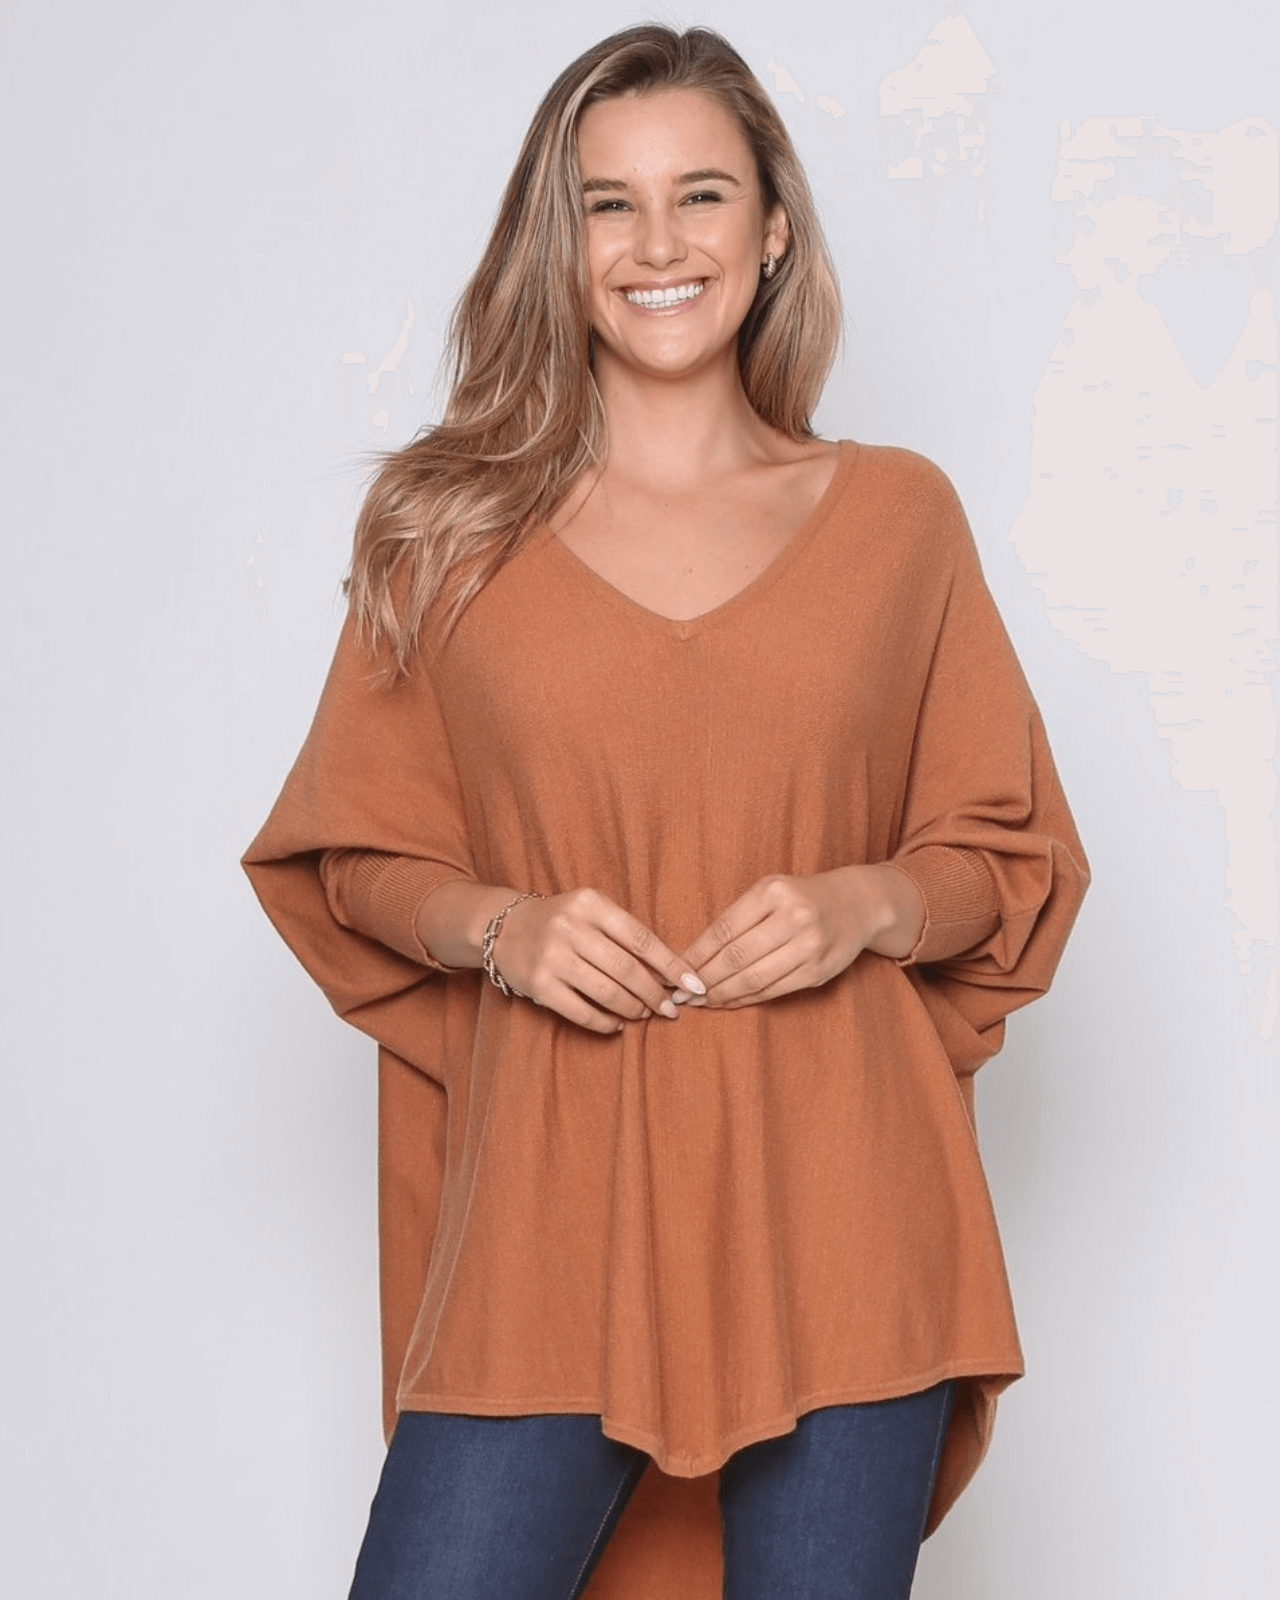 Zali Knit Top - Caramel